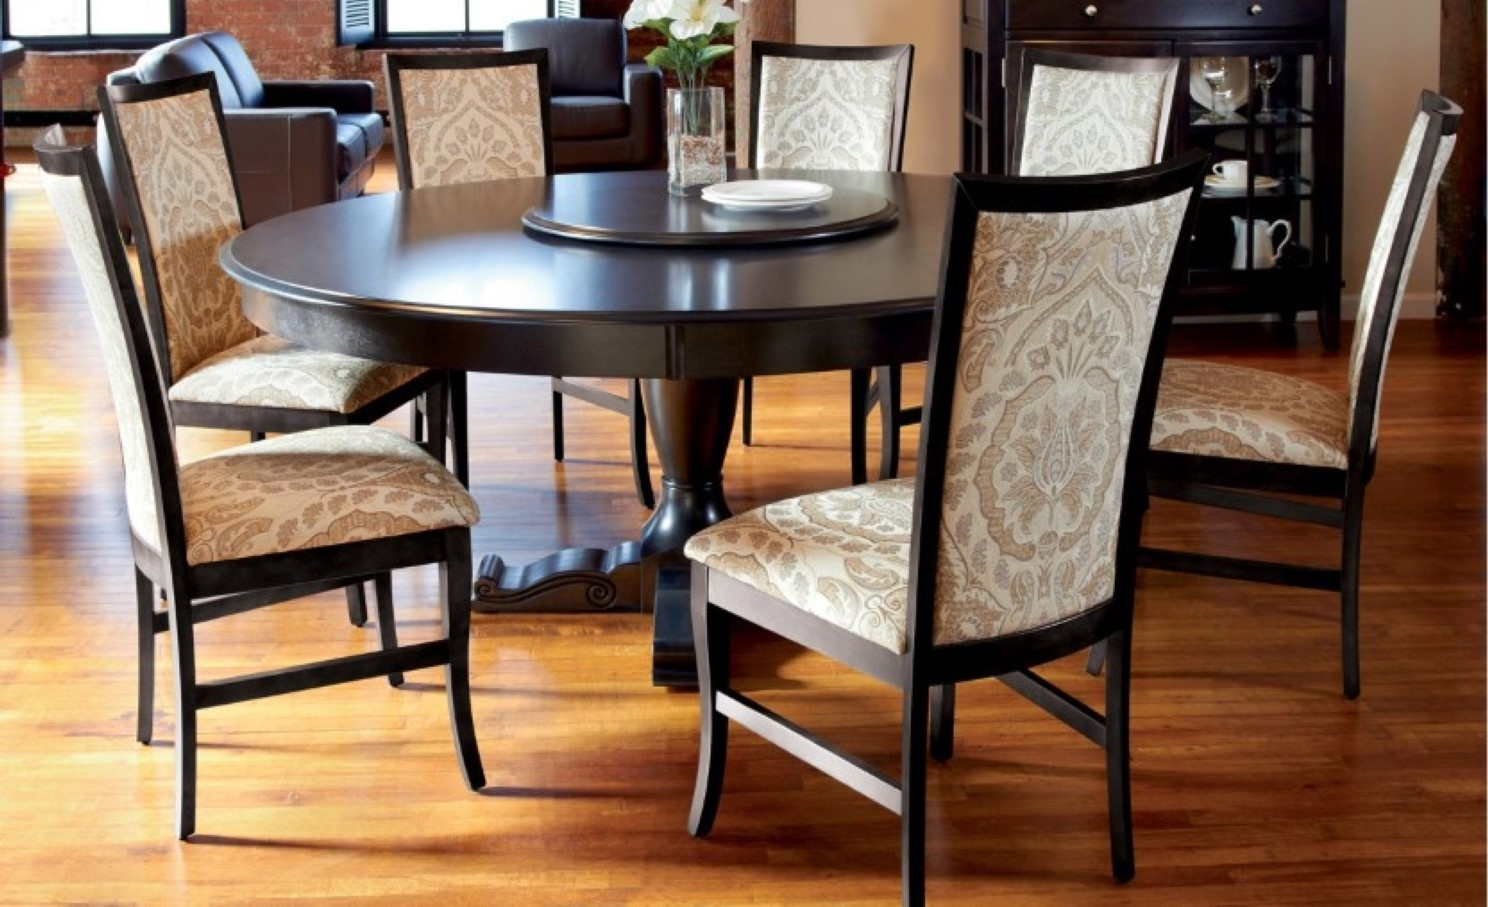 Dining Room Large Solid Wood Dining Room Table Dining Chairs For In 2018 Dark Wood Dining Tables 6 Chairs (View 21 of 25)